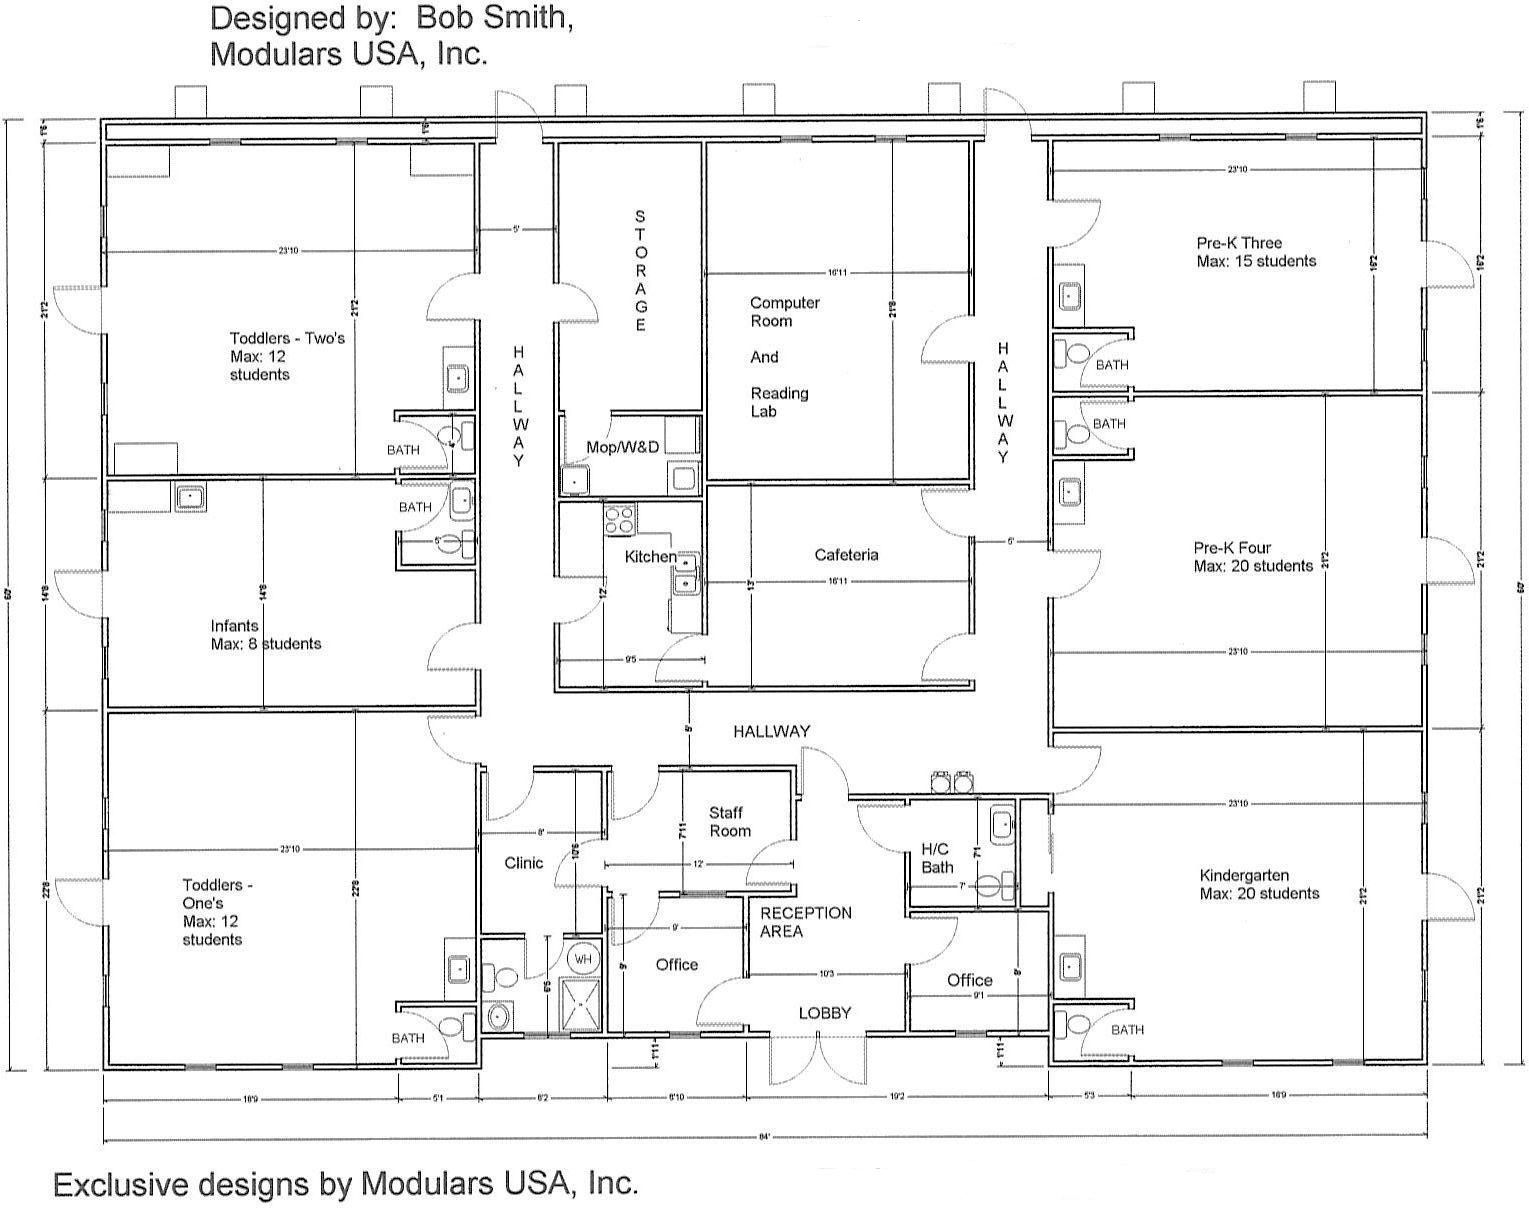 daycare center blueprints Floor Plan for MindExpander Day Care